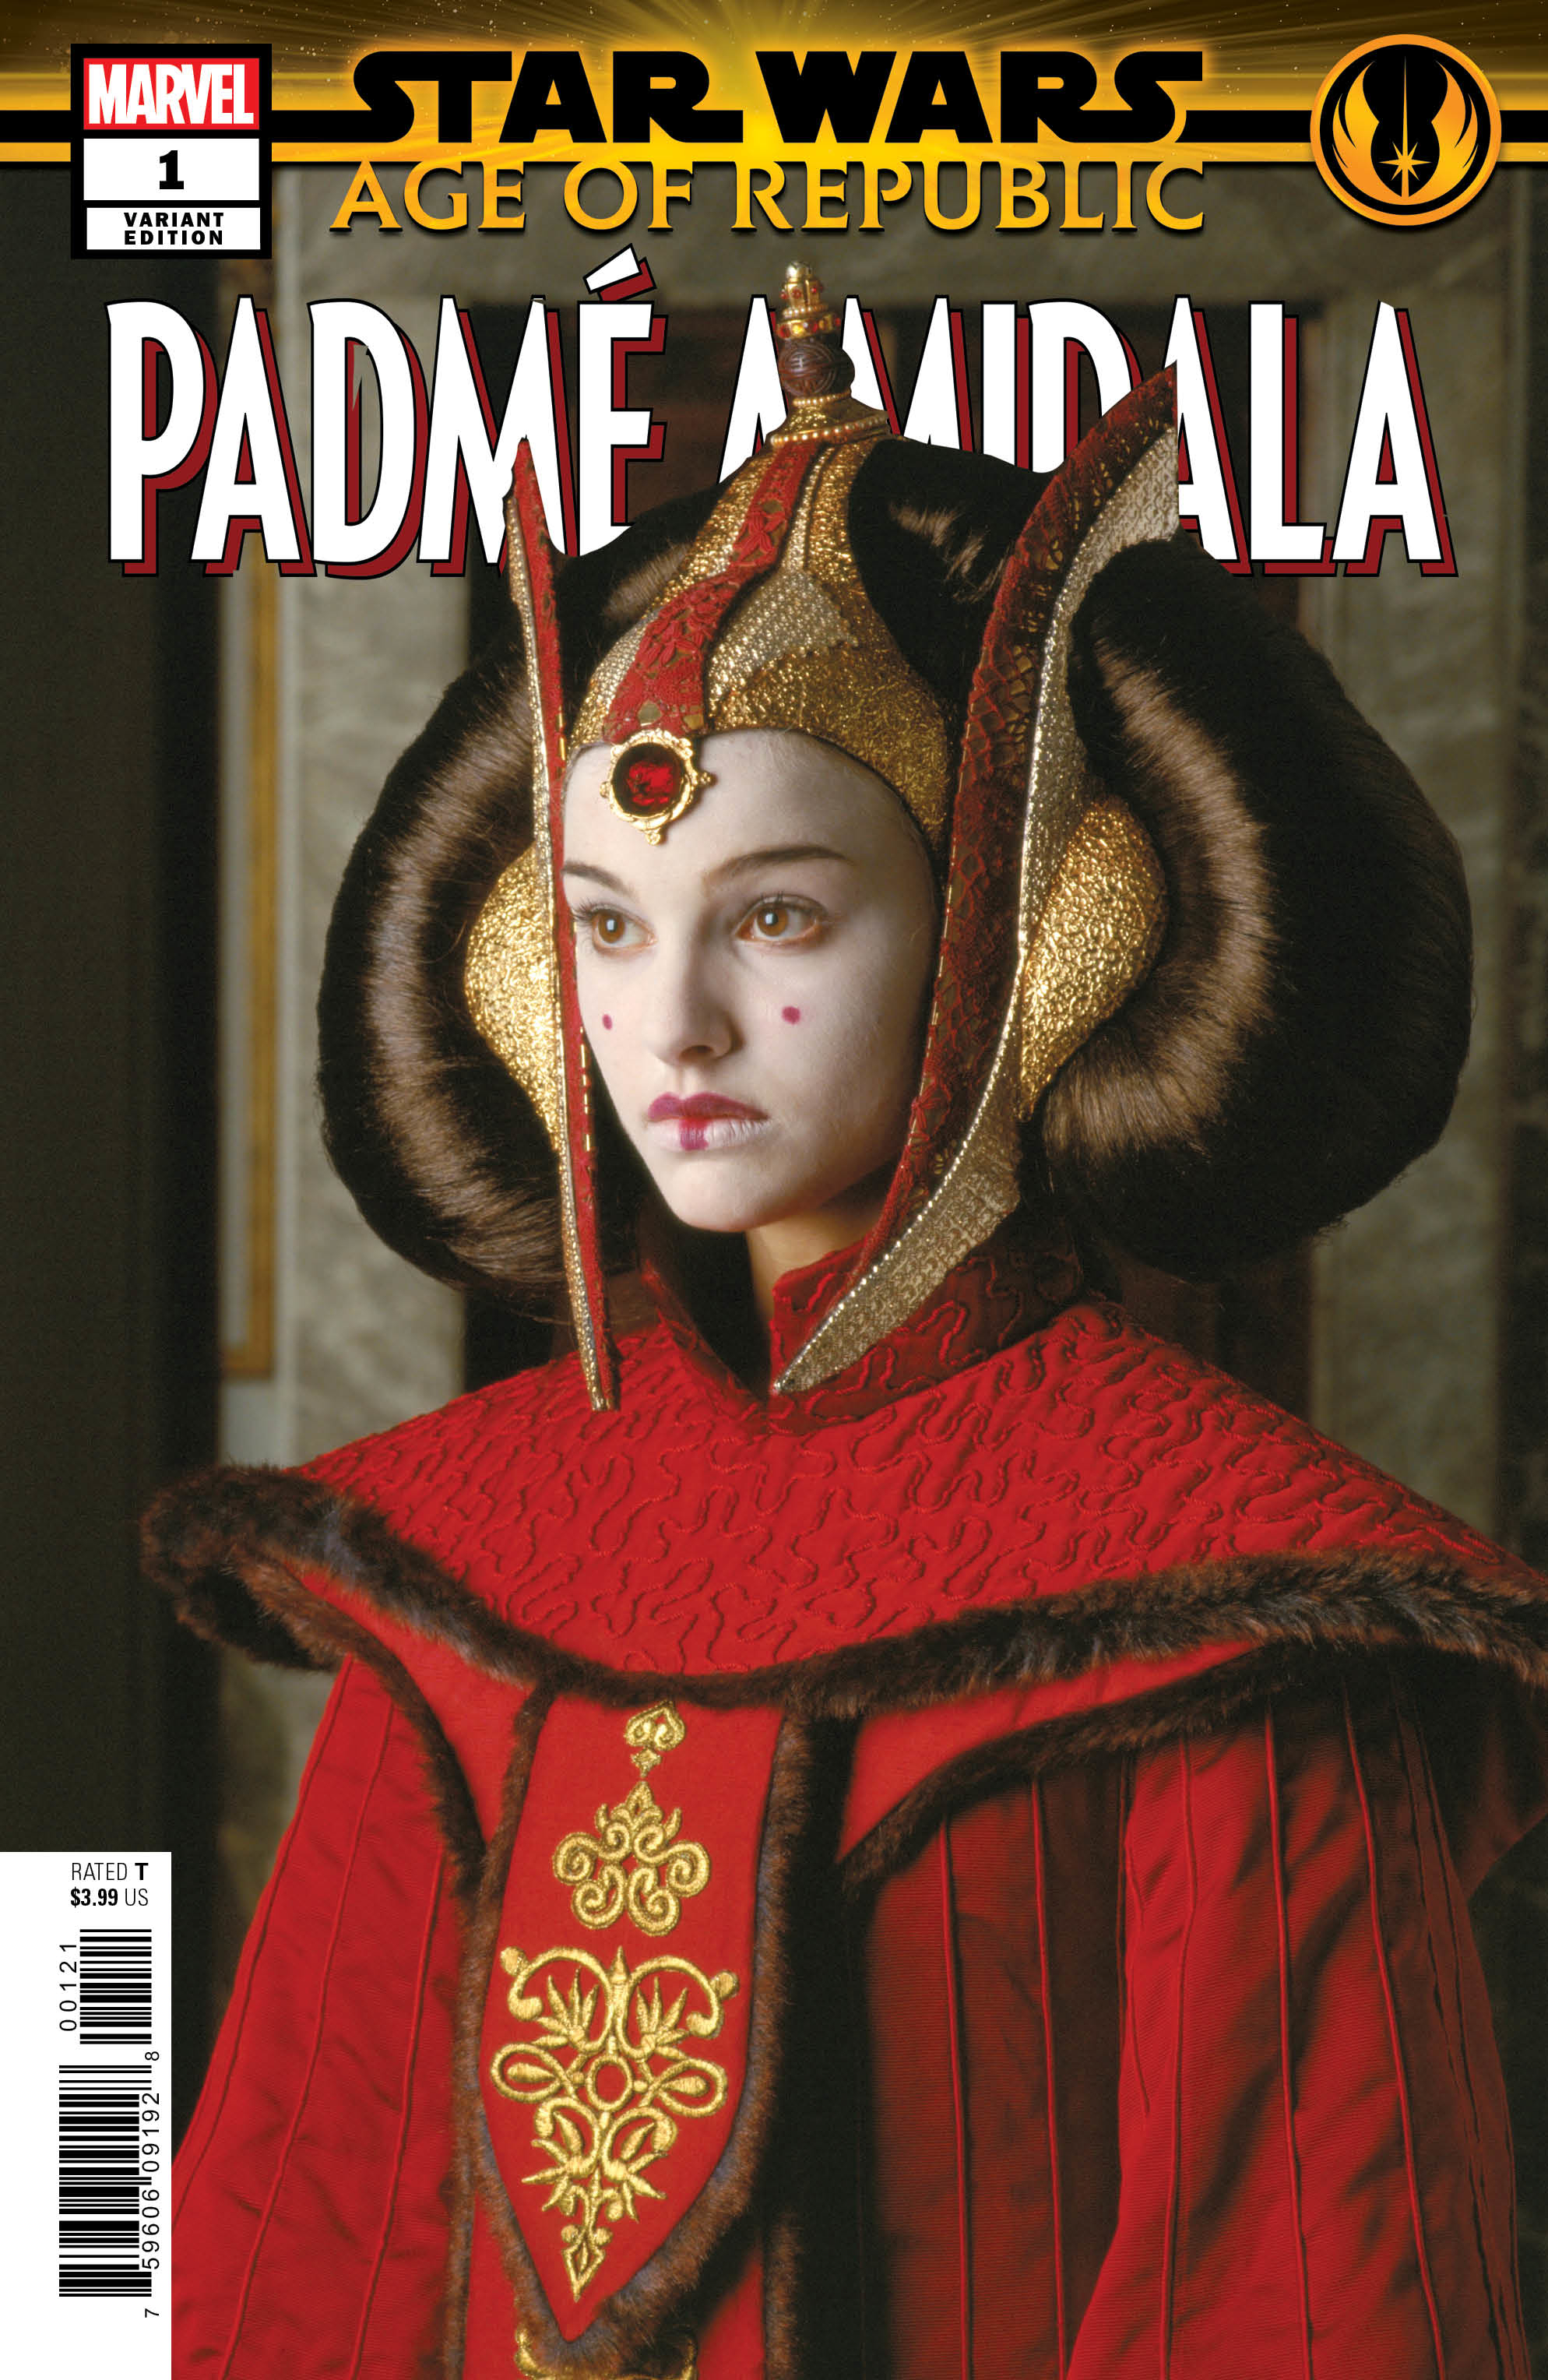 Age of Republic: Padmé Amidala #1 (Movie Variant Cover) (06.03.2019)